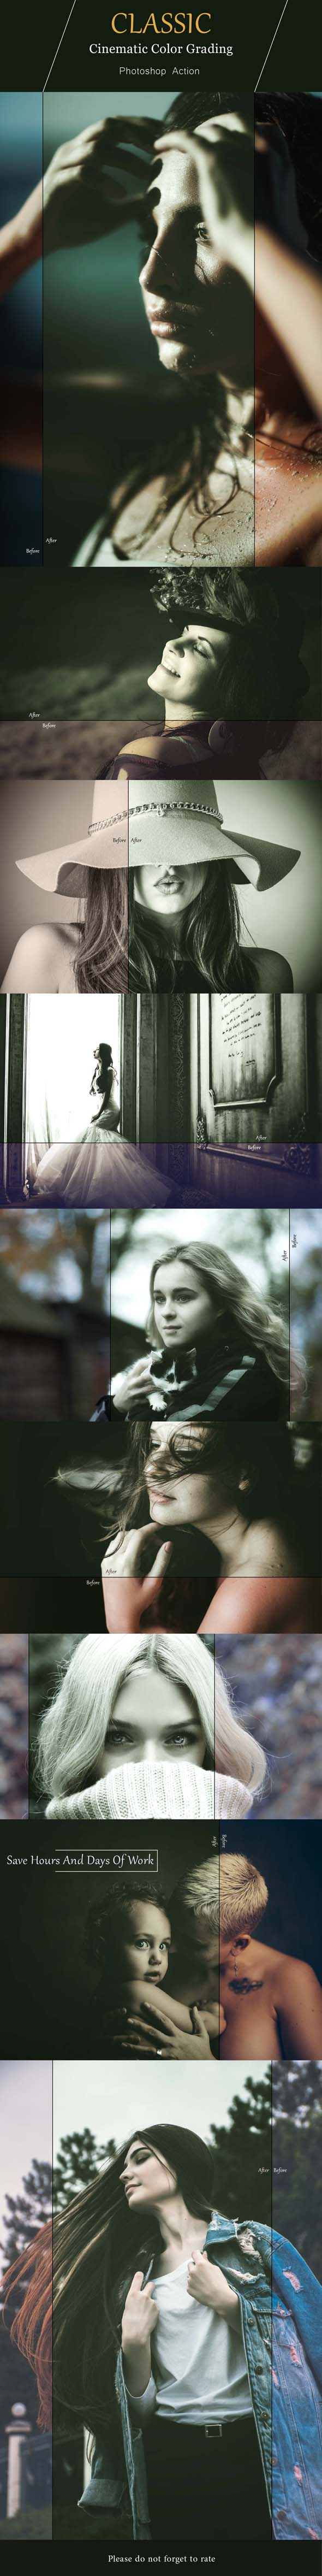 Neo Classic Cinematic Color Grading - Photo Effects Actions